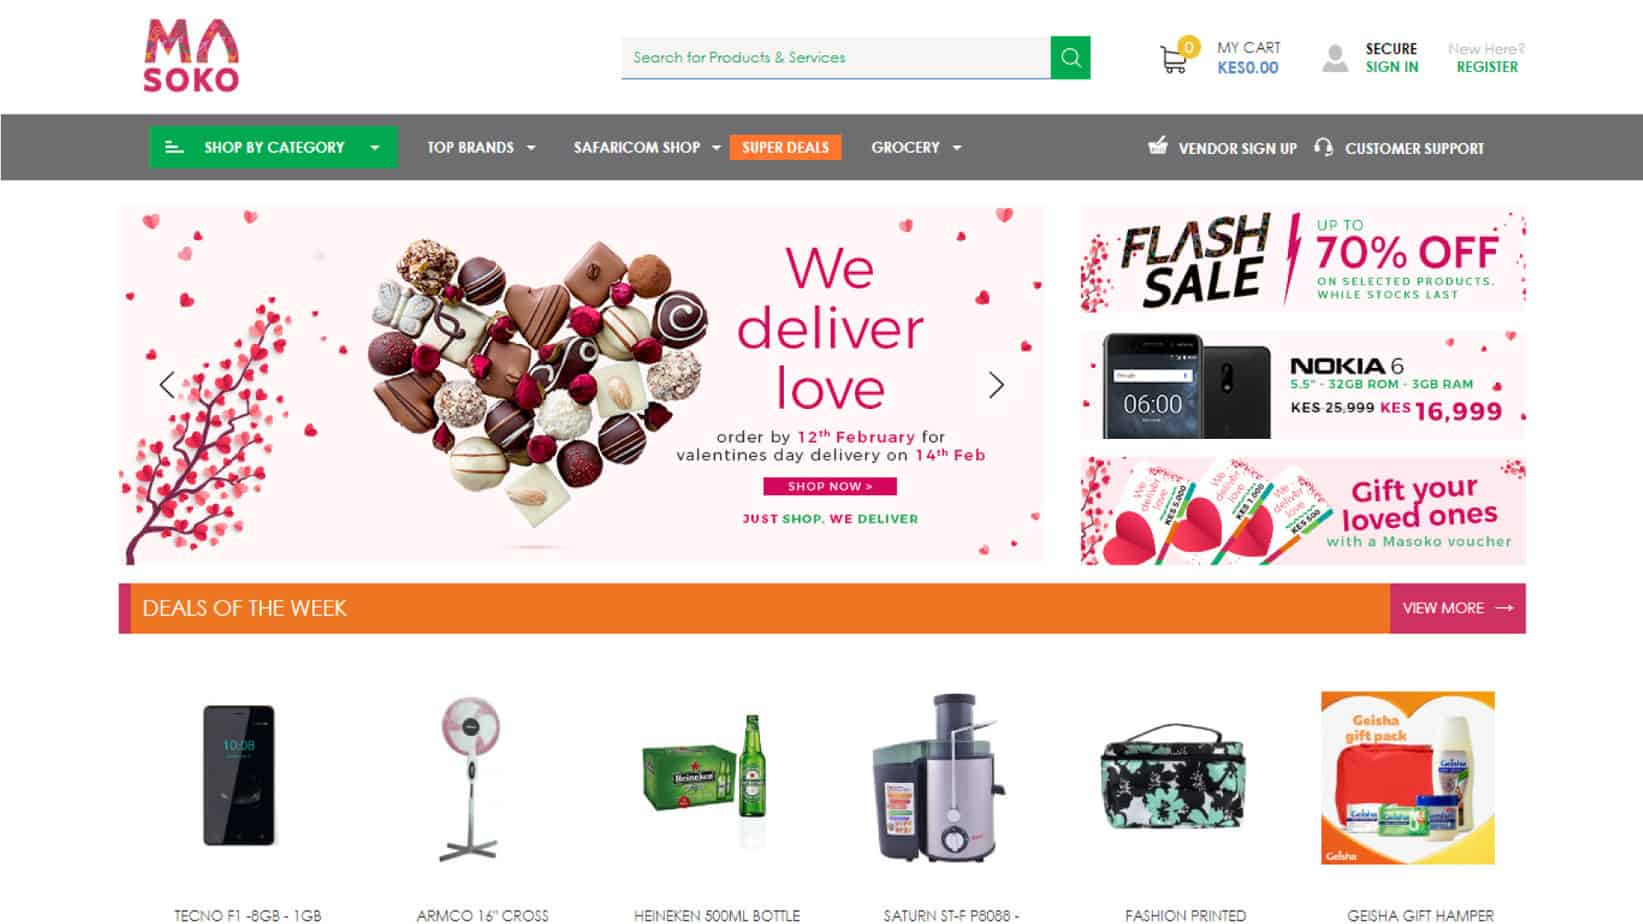 082046c212 If you are looking for inspiration on how to design an e-commerce website  Masoko is a good place to start. With a bit of Masoko touch to the website  design